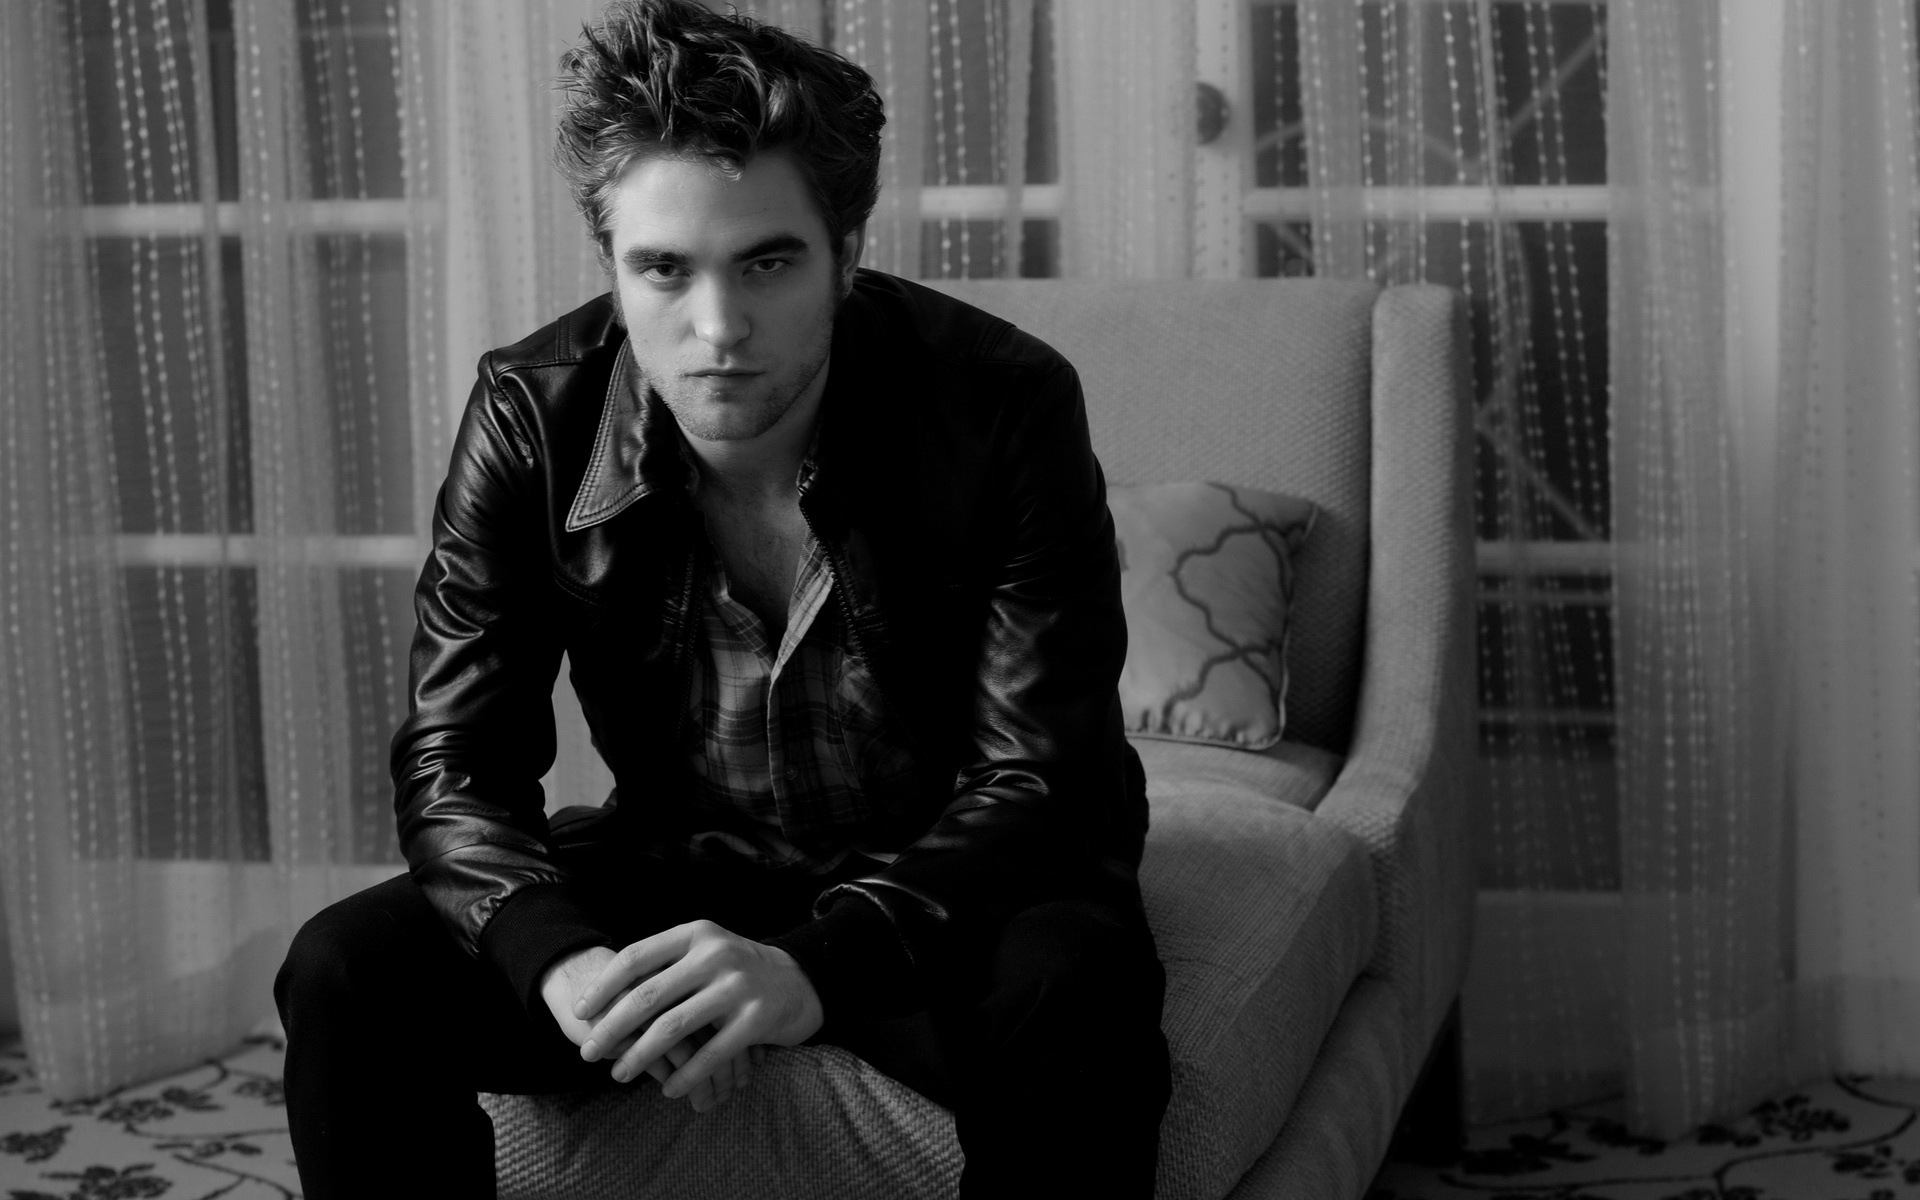 Robert Pattinson Black and White for 1920 x 1200 widescreen resolution